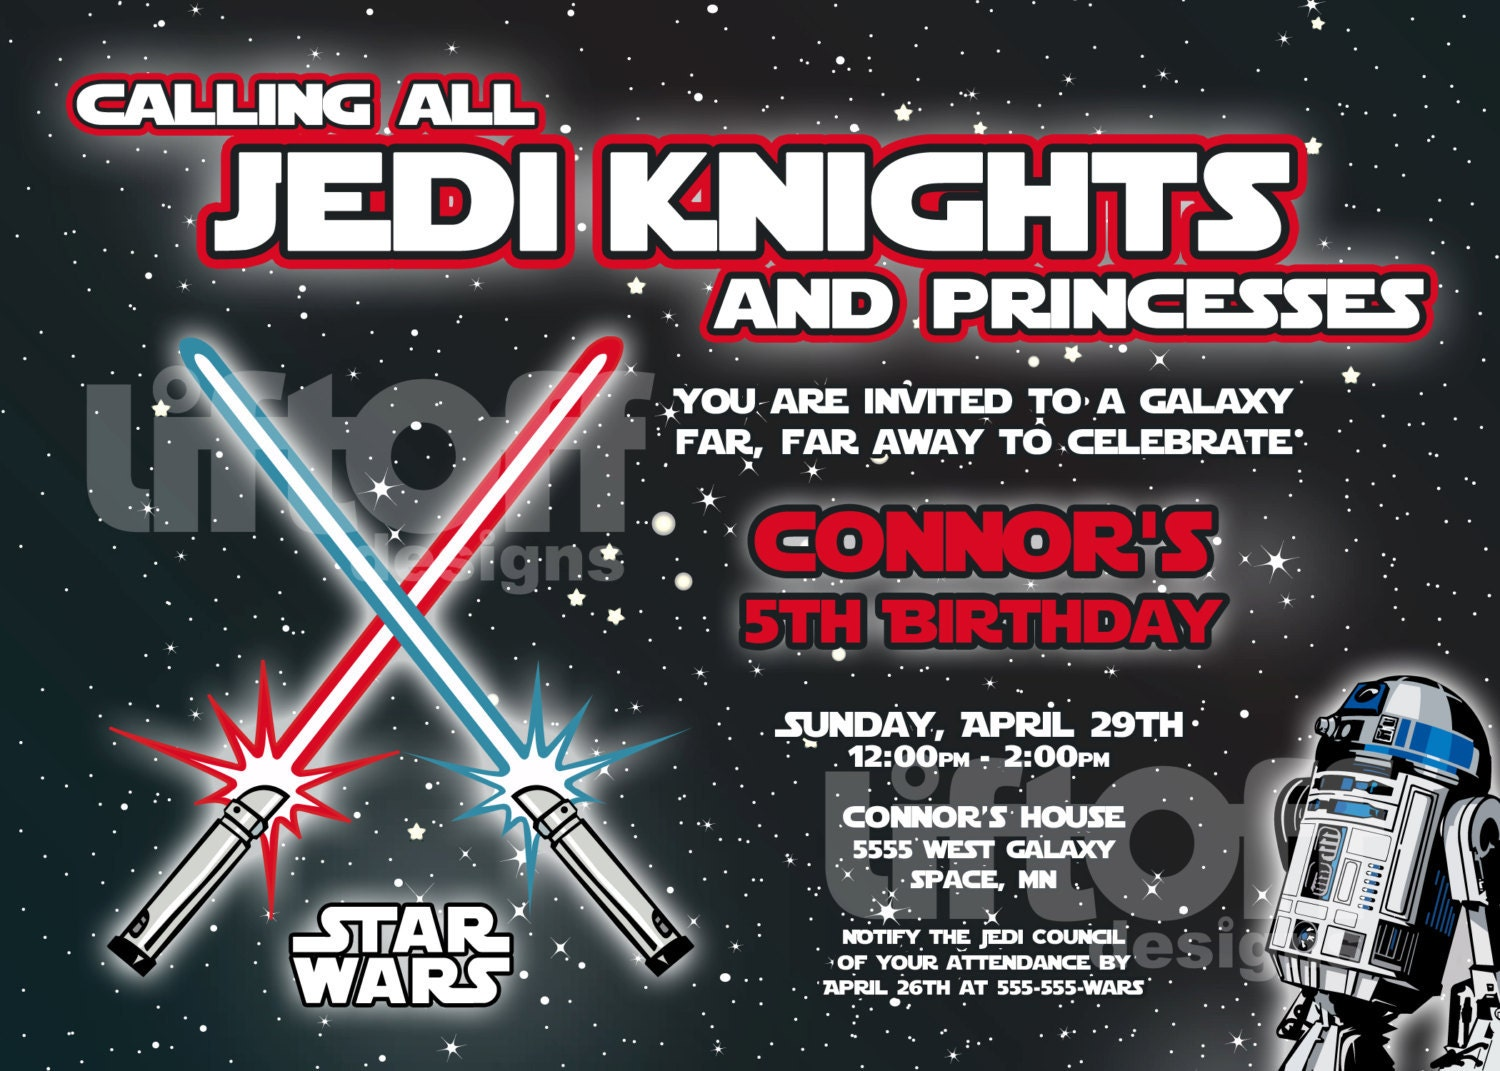 Dynamic image with printable star wars invitation